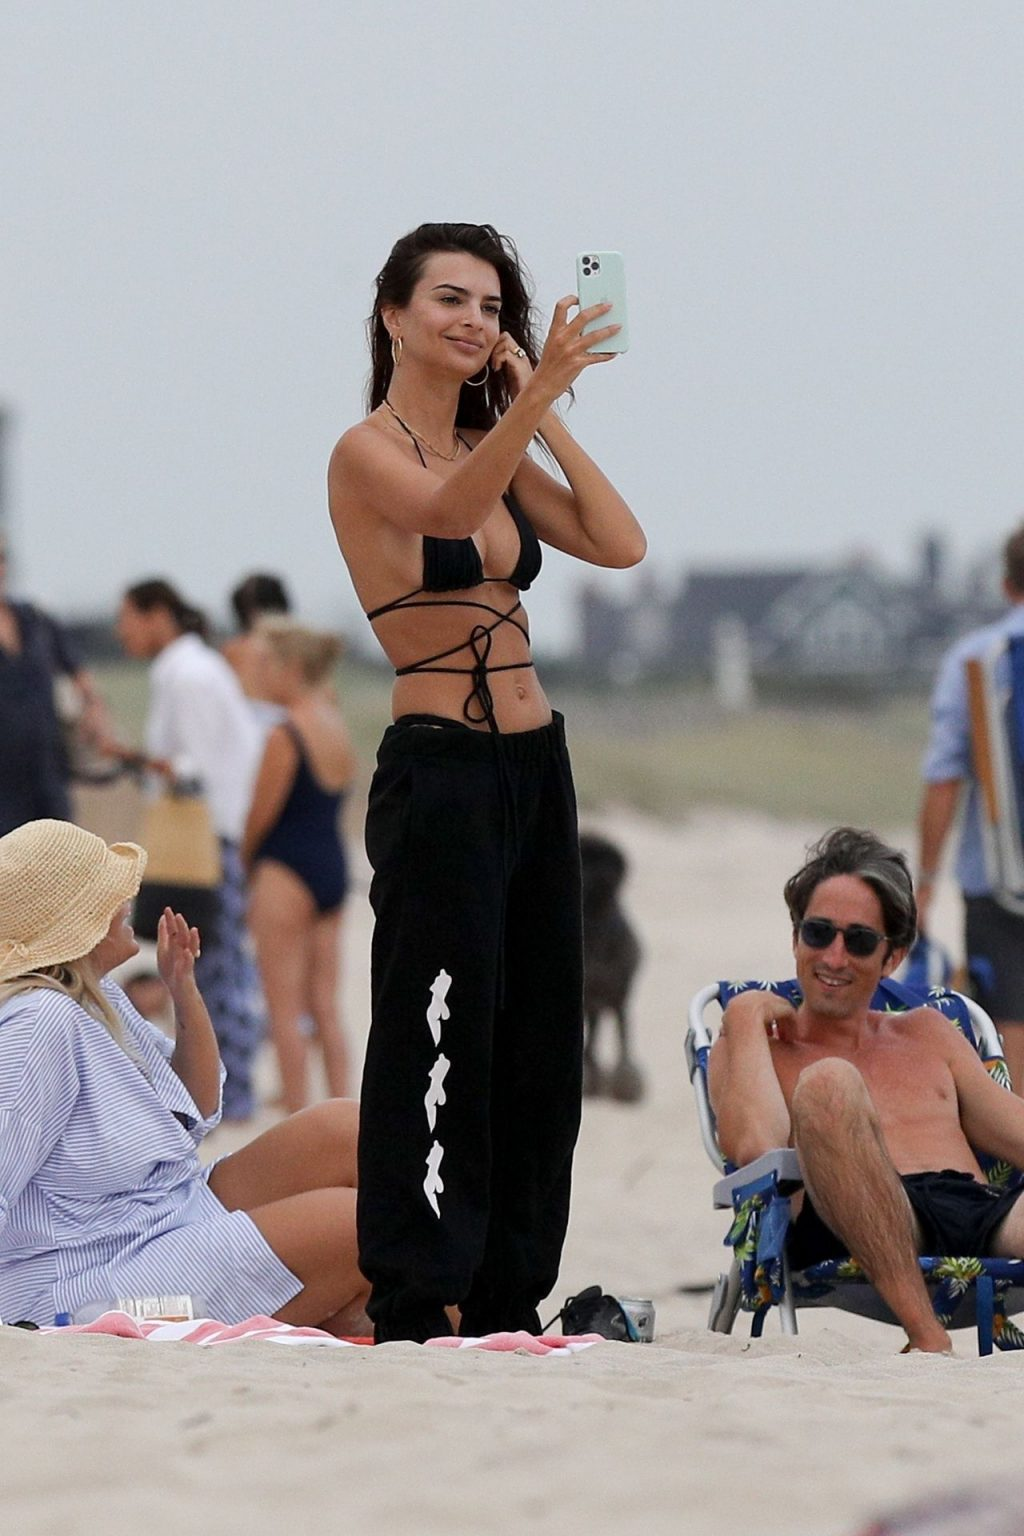 Emily Ratajkowski Shows Her Abs at the Beach in The Hamptons (64 Photos)